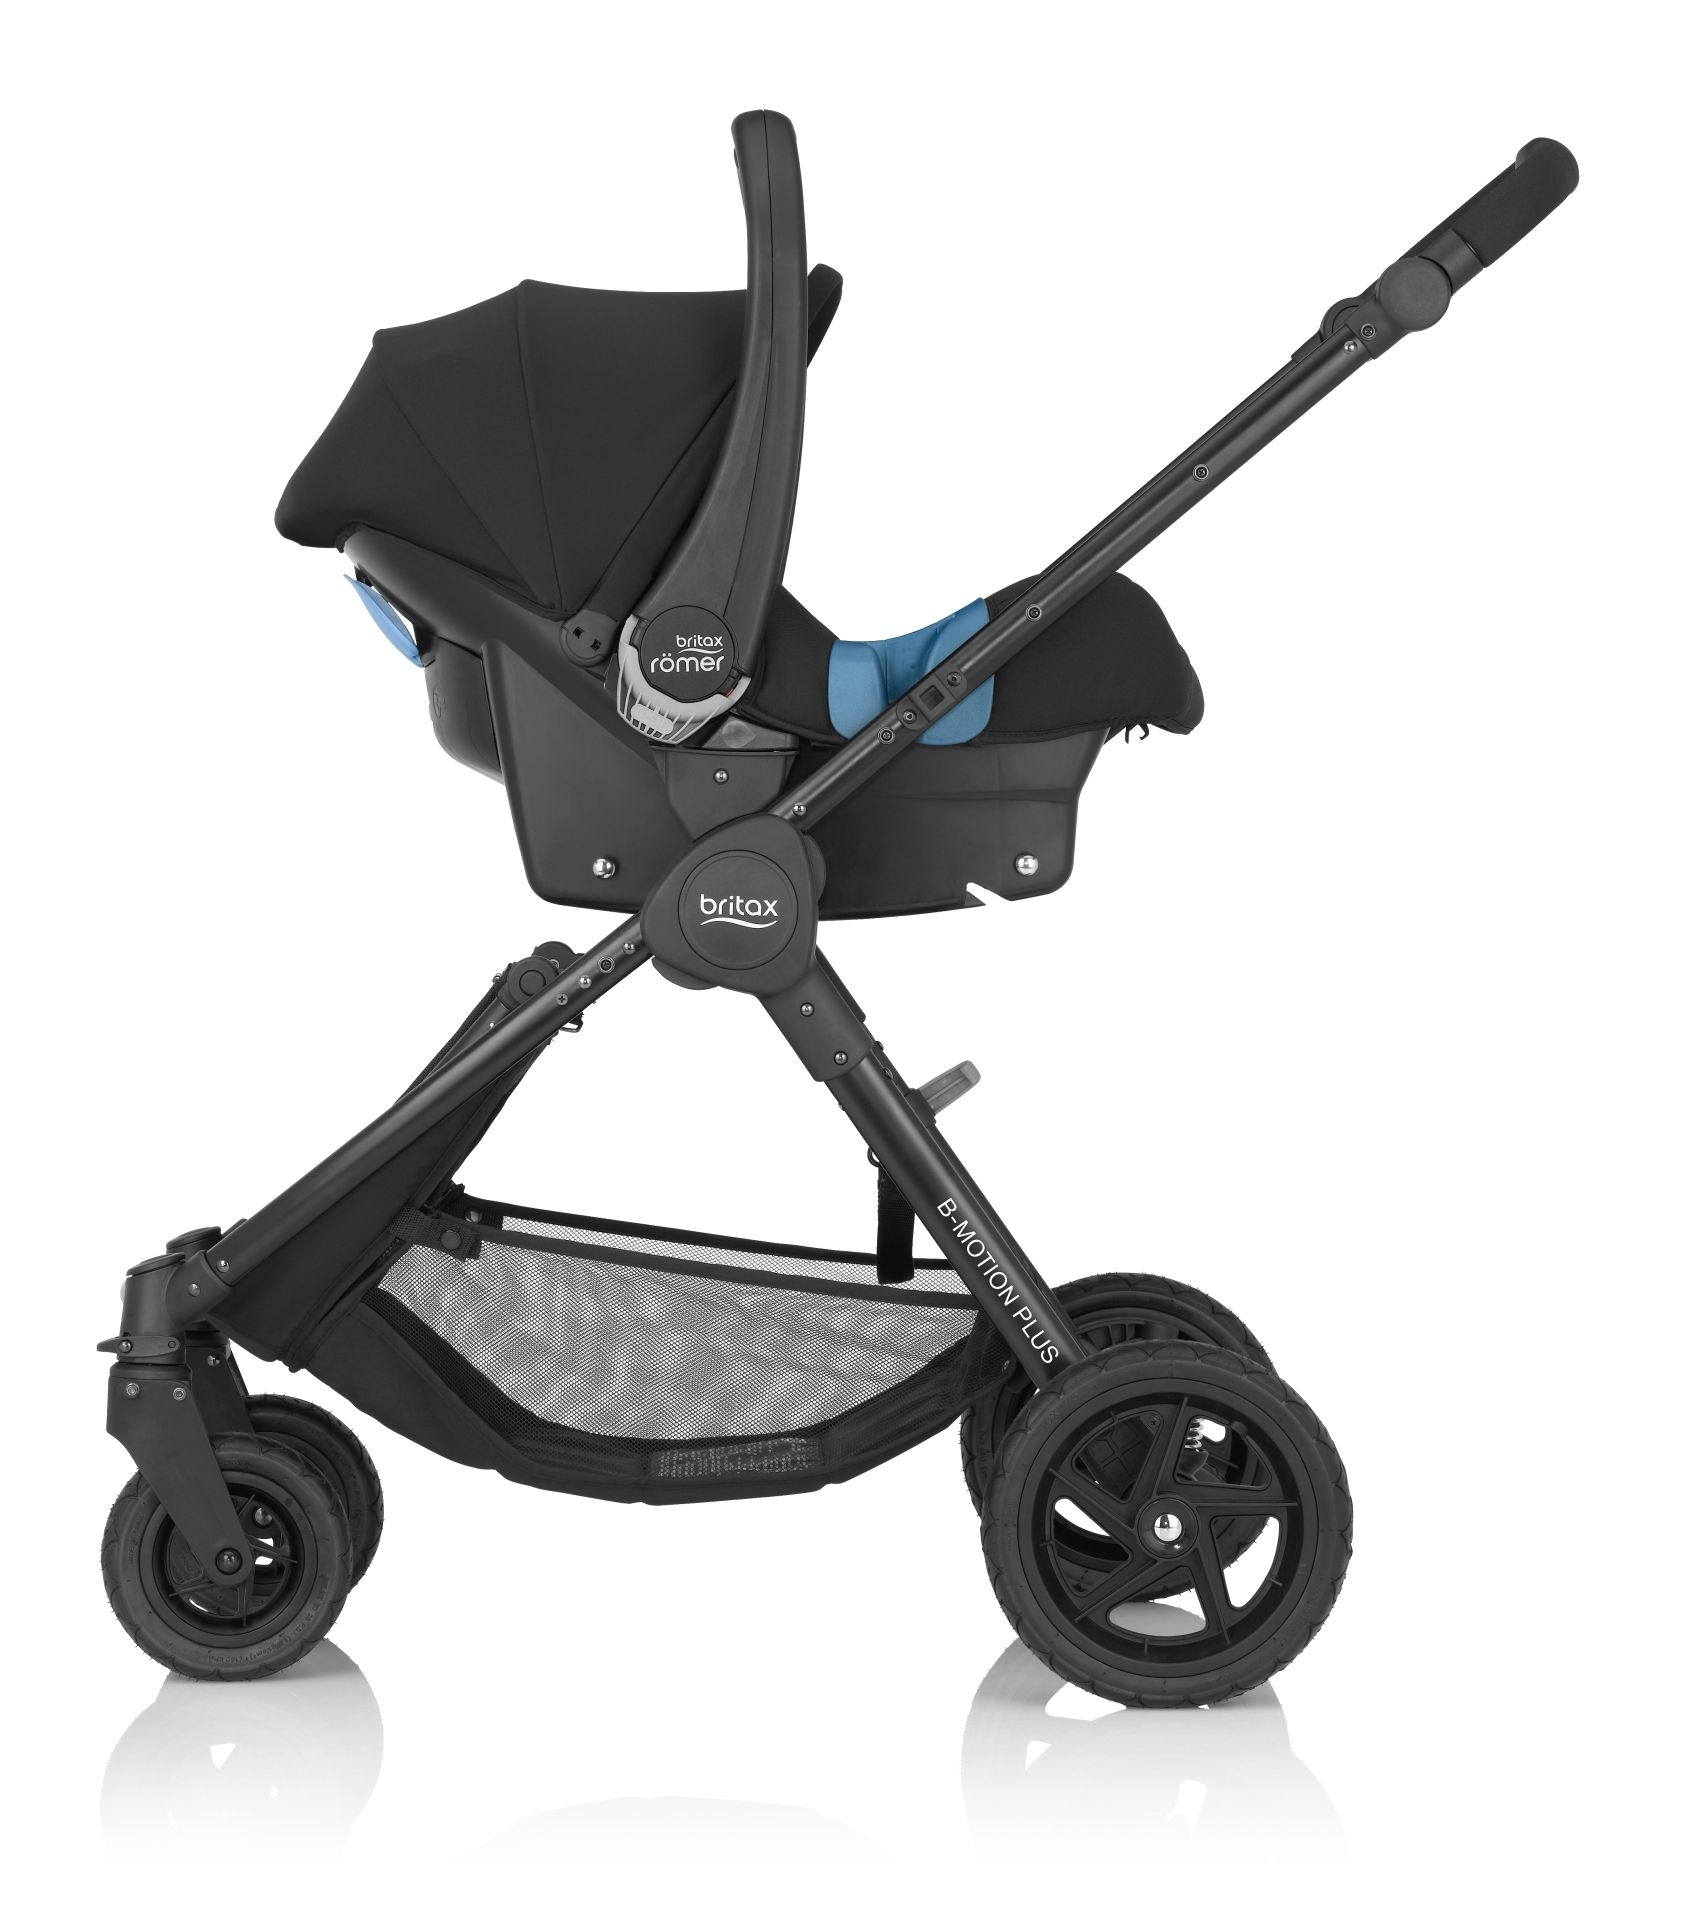 britax b-motion 4 plus incl. canopy pack + carrycot attachment +